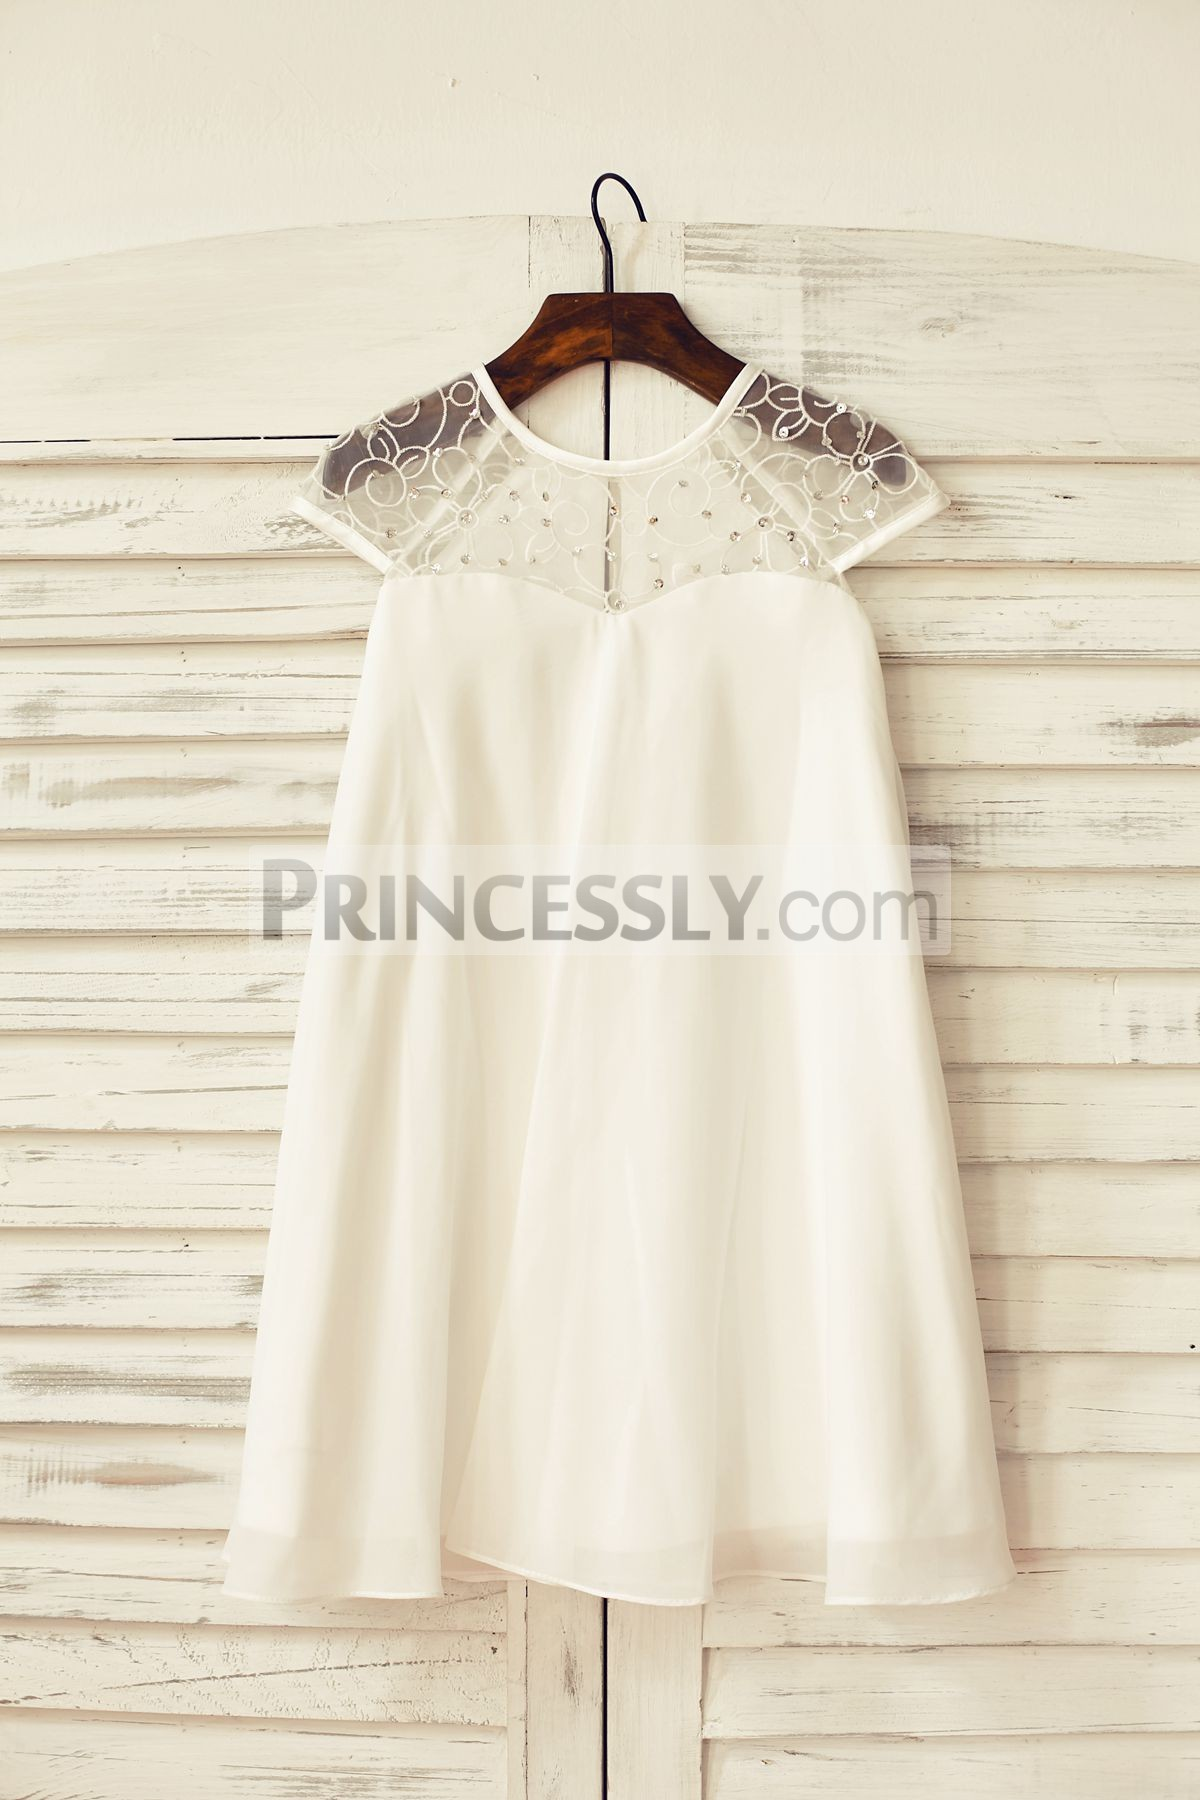 Sequined lace tulle chiffon ivory flower girl dress